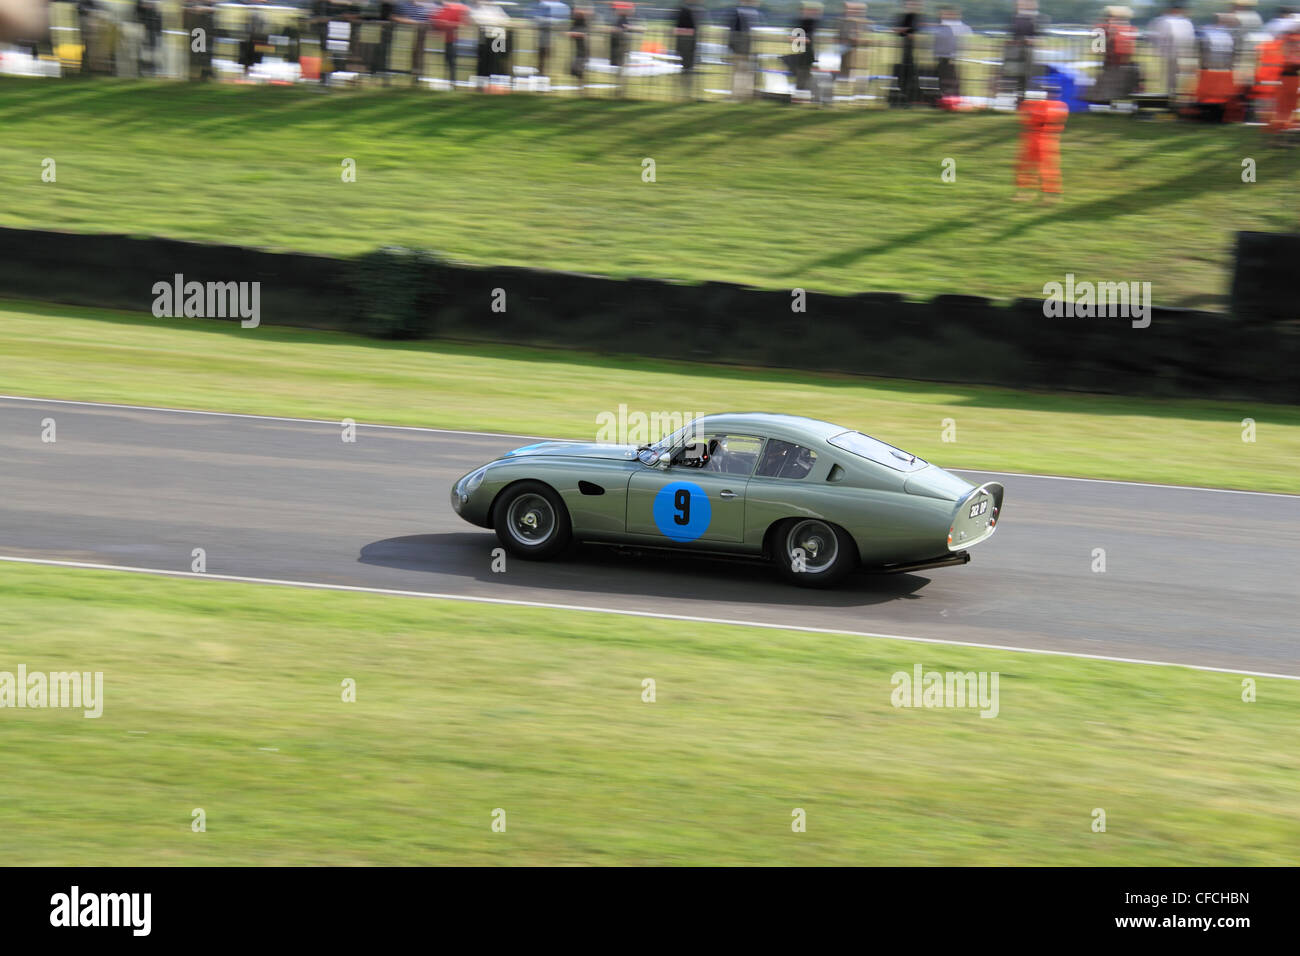 1961 Aston Martin DP212 (modified DB4GT prototype), Goodwood Revival 2011, Chichester, West Sussex, England, Great - Stock Image